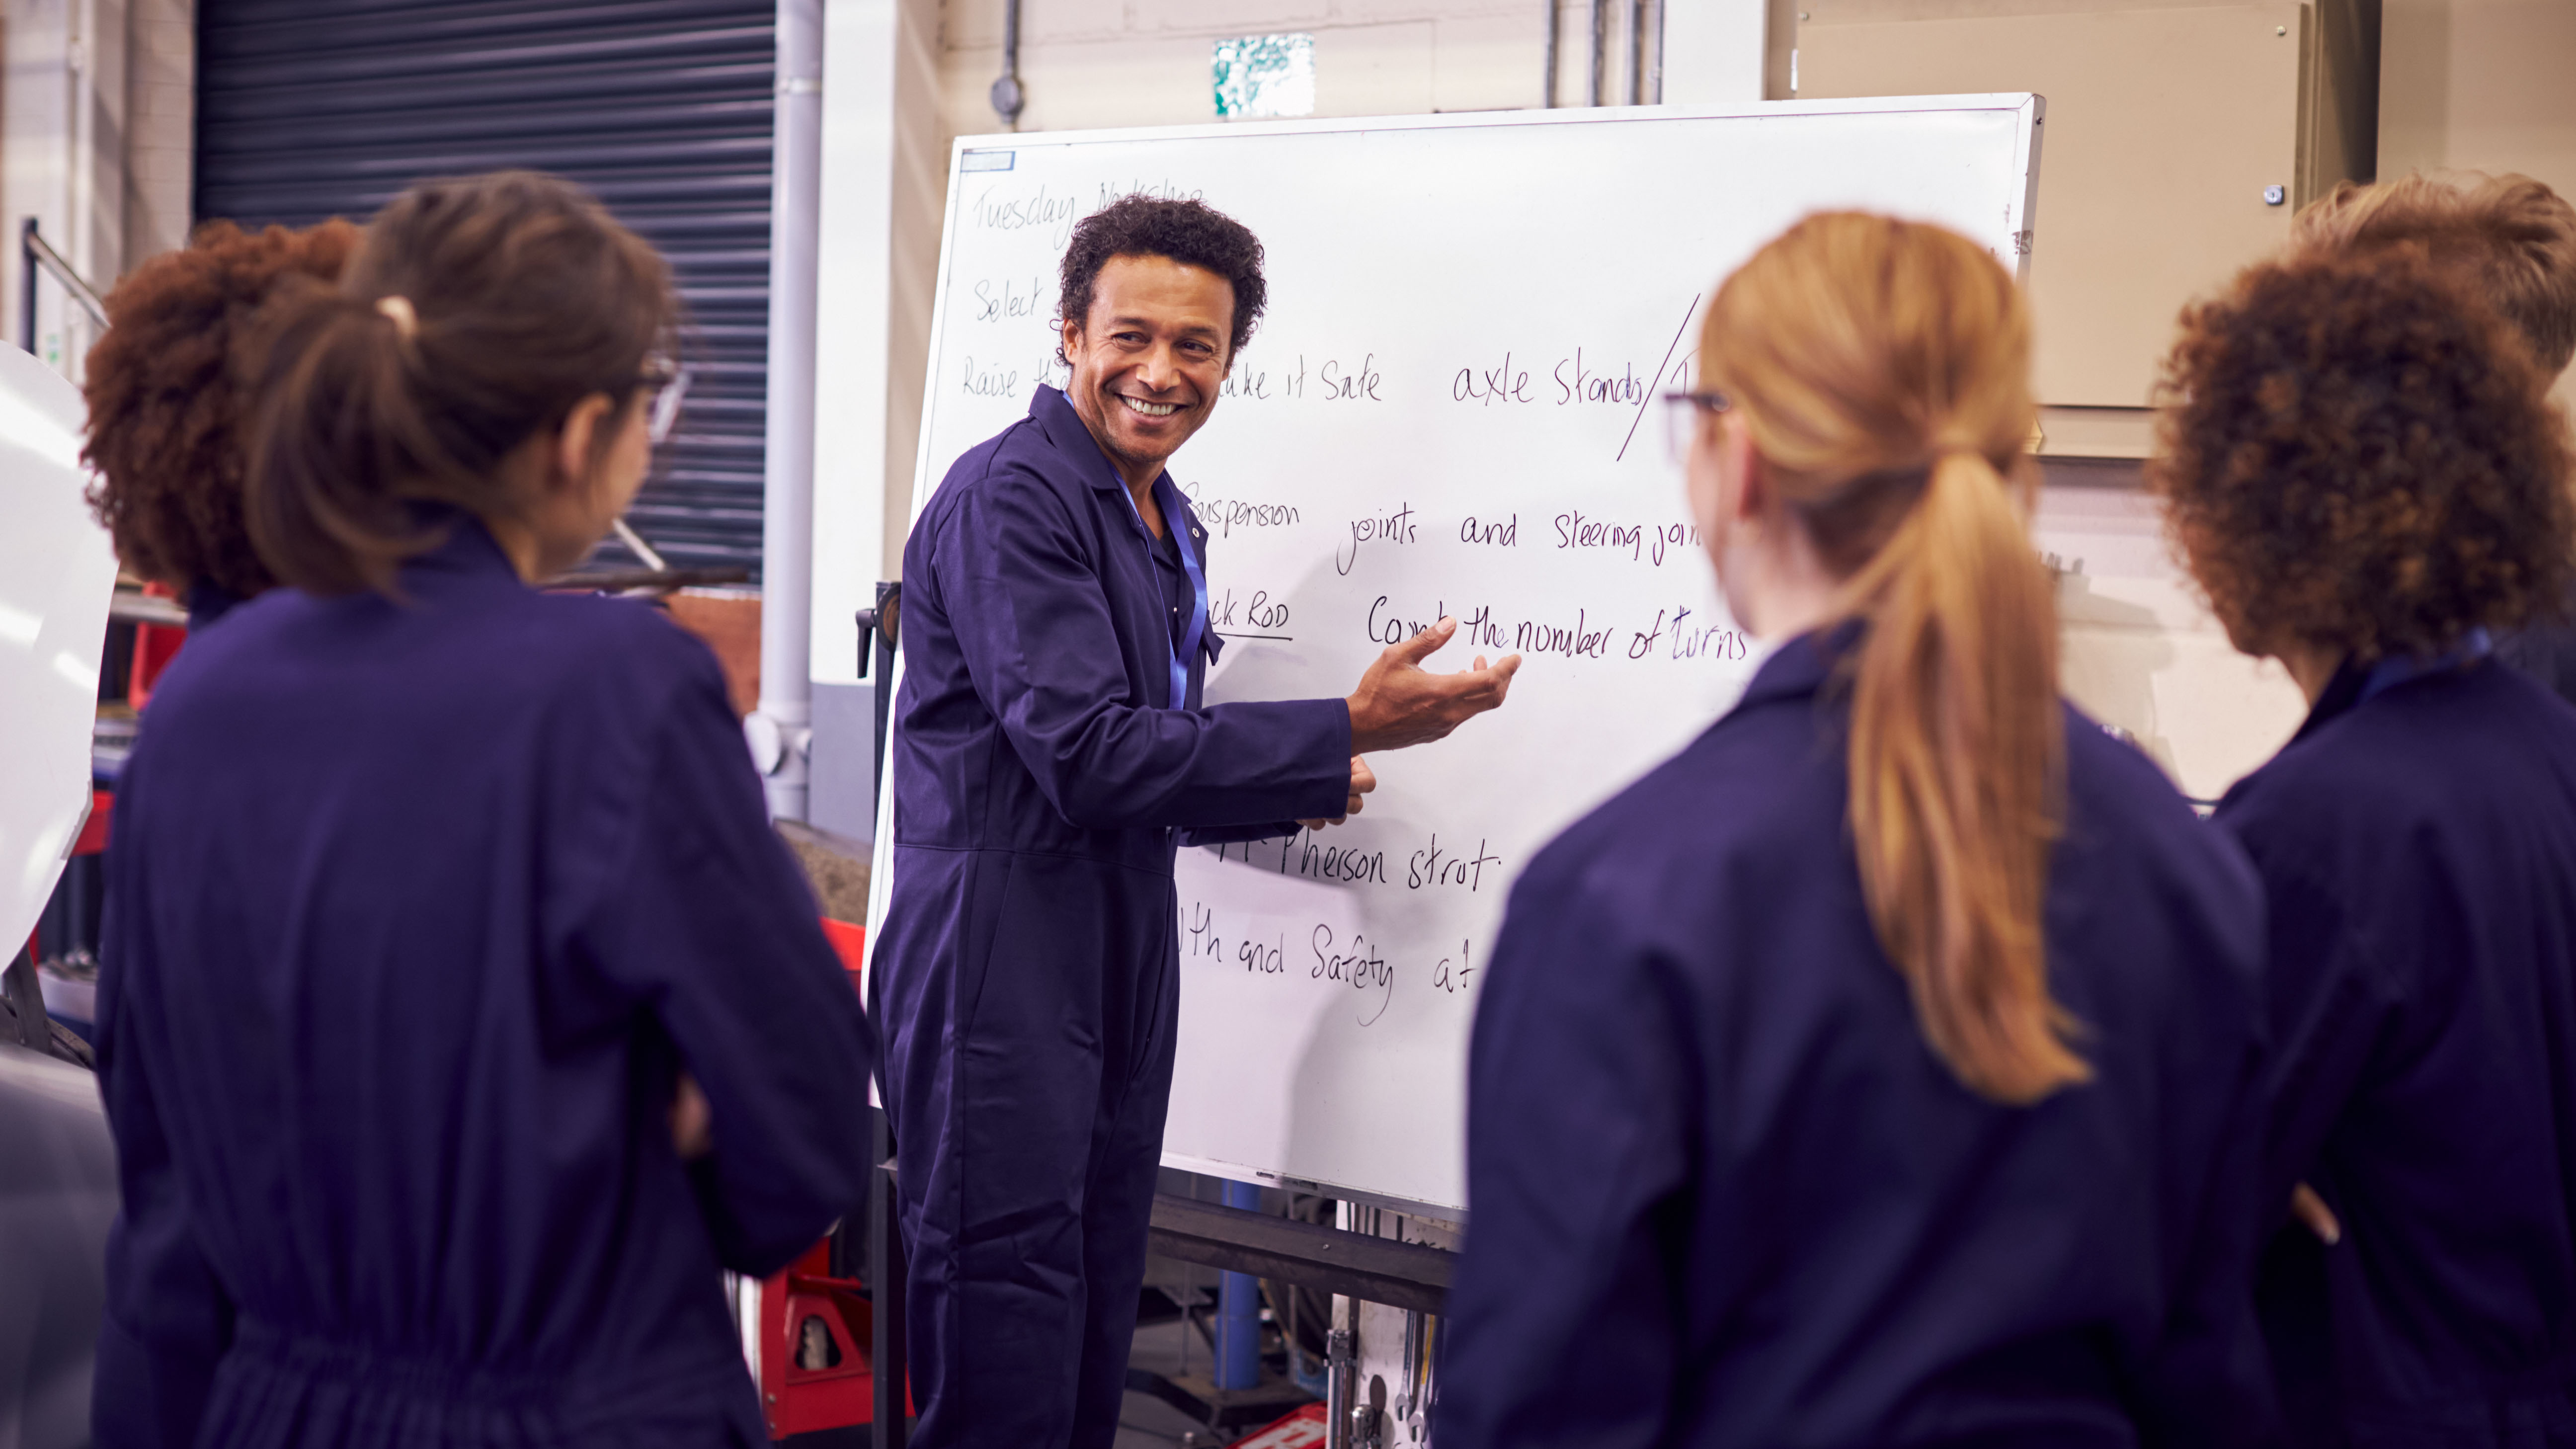 Mechanic vocational teacher in front of whiteboard in mechanic overalls surrounded by students listening